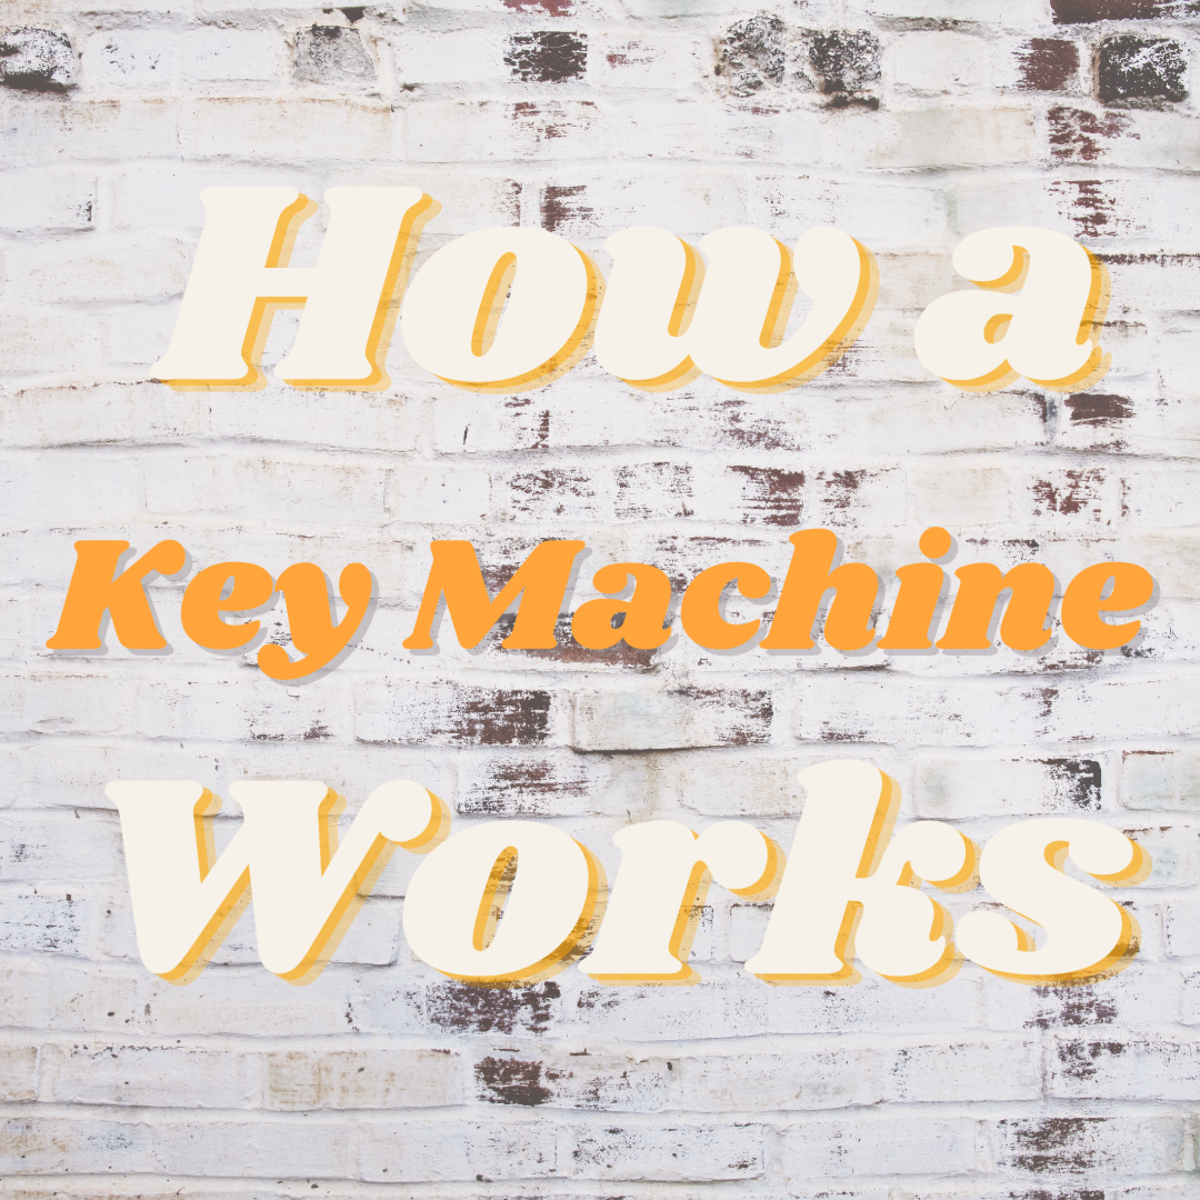 Learn how a key machine operates and how it accurately cuts keys